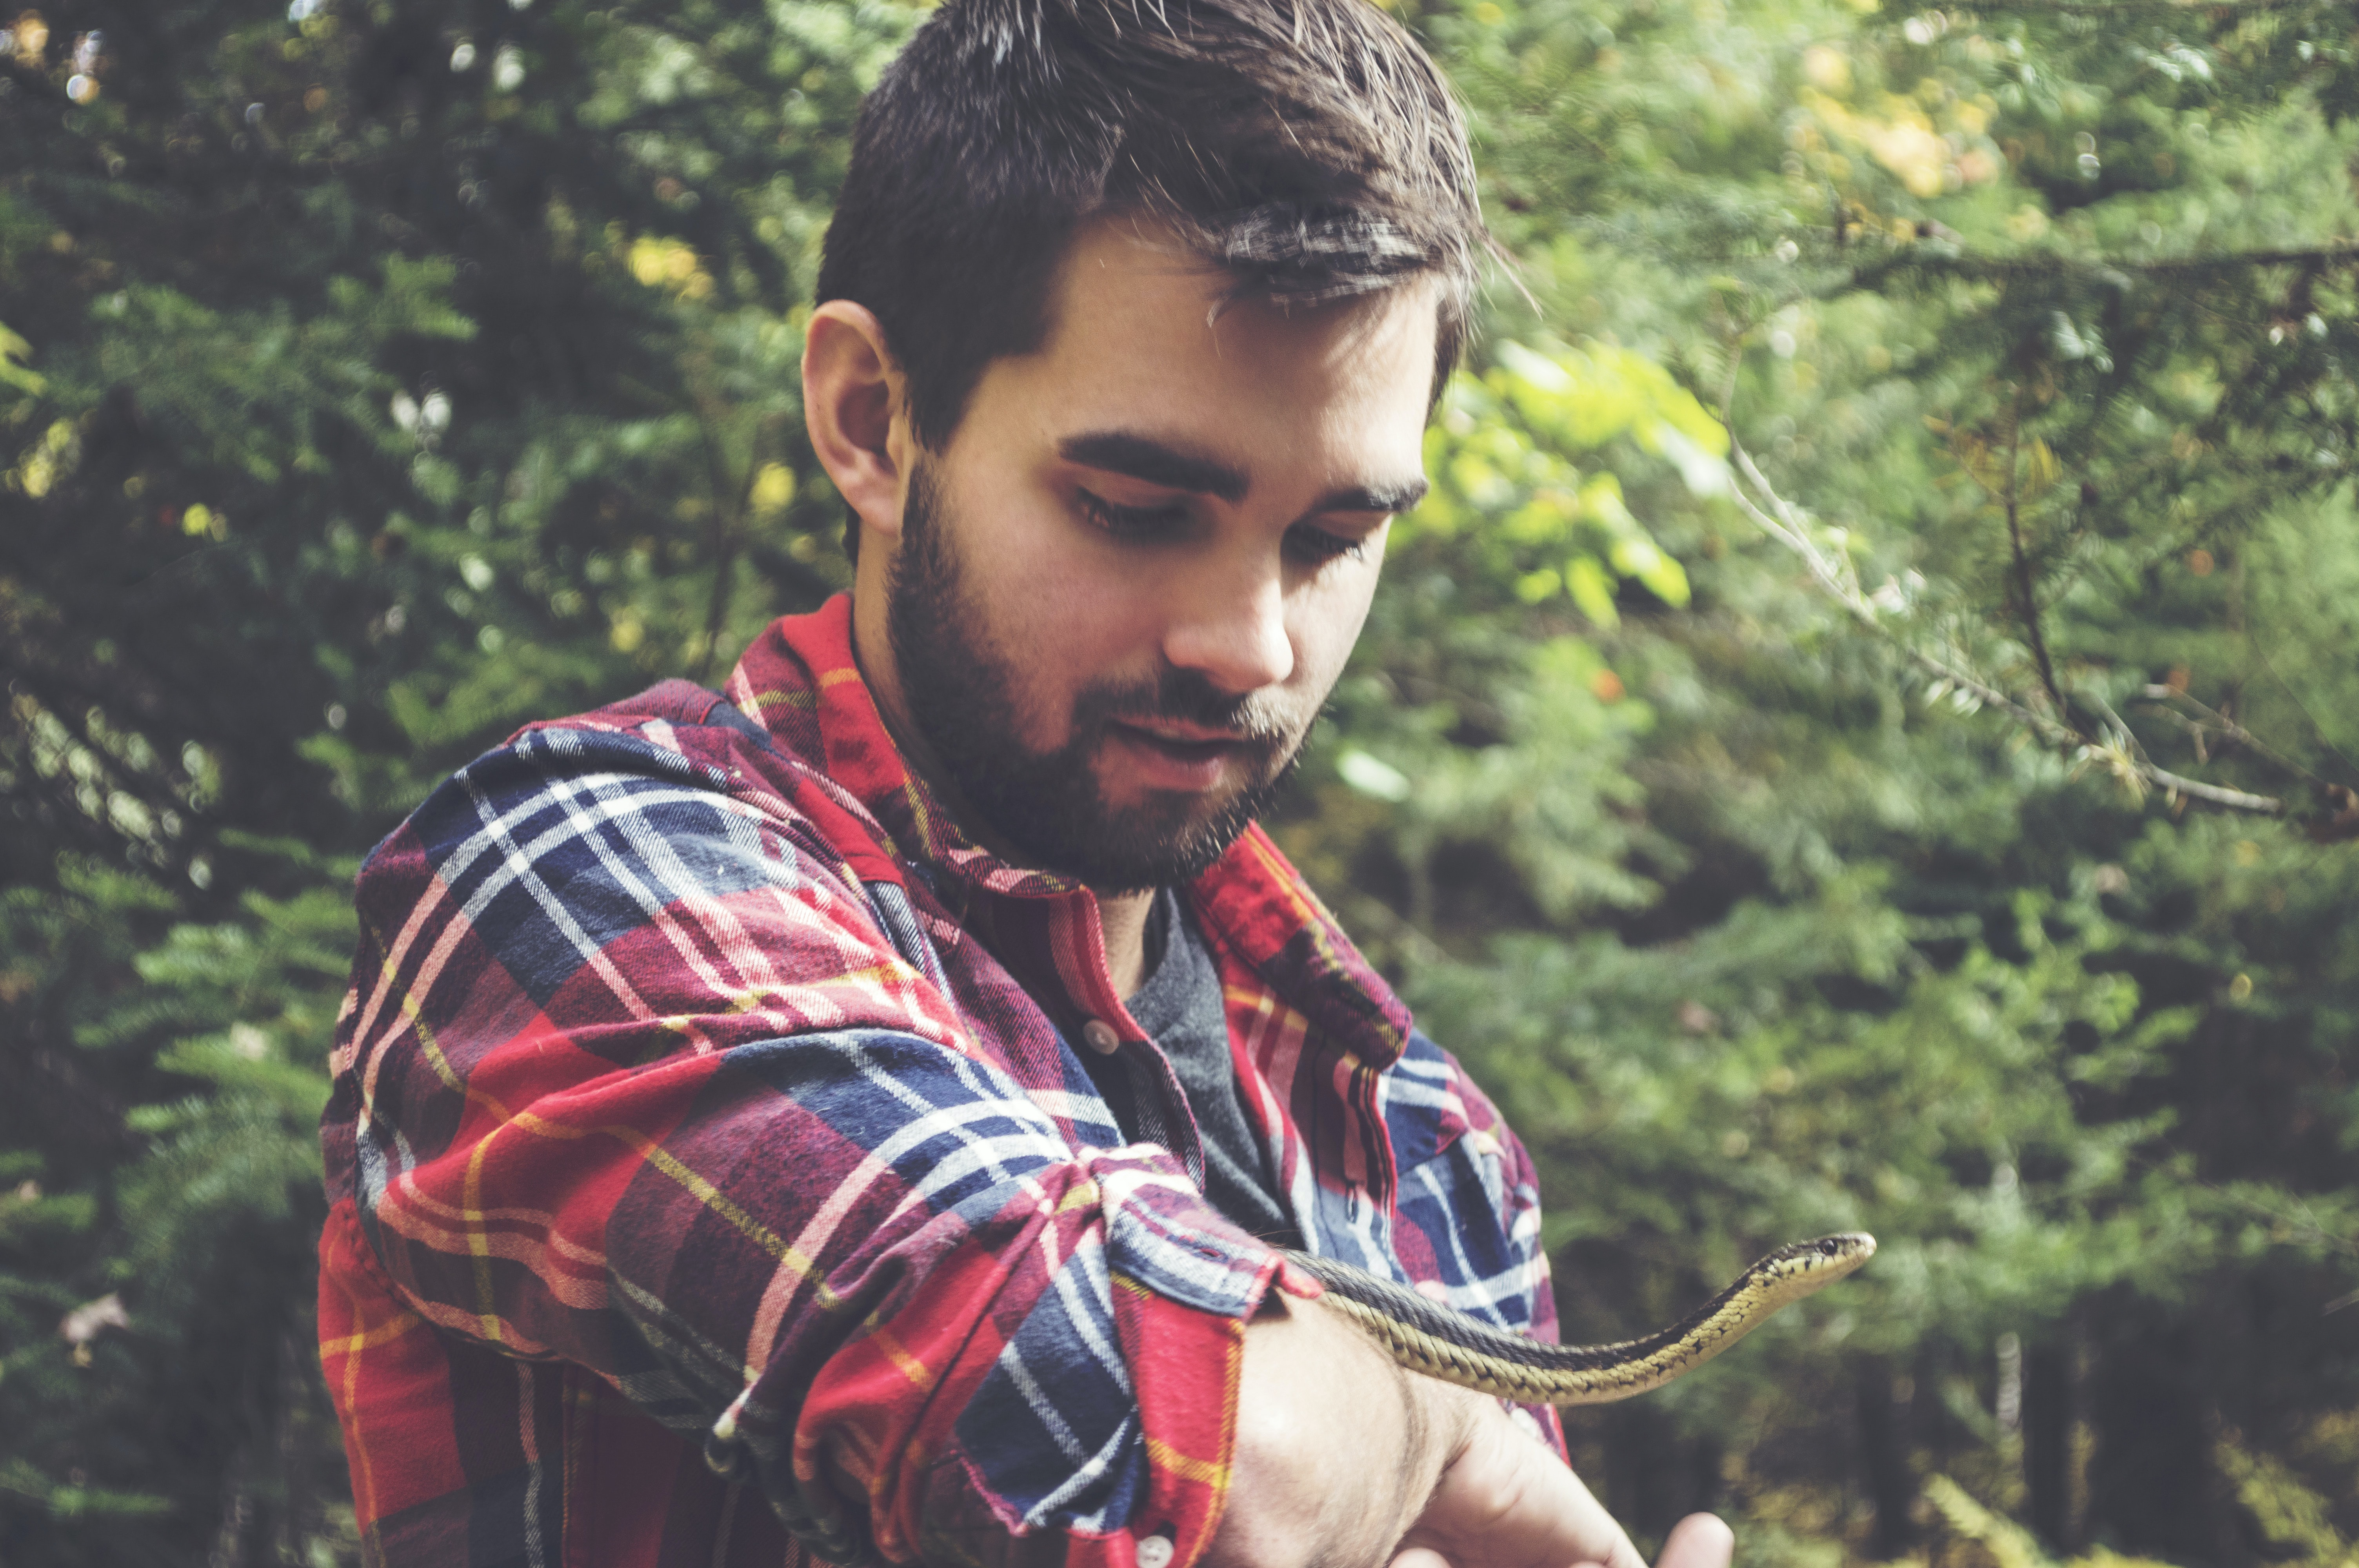 A bearded man in a wooded area looks down, holding a snake on his arm